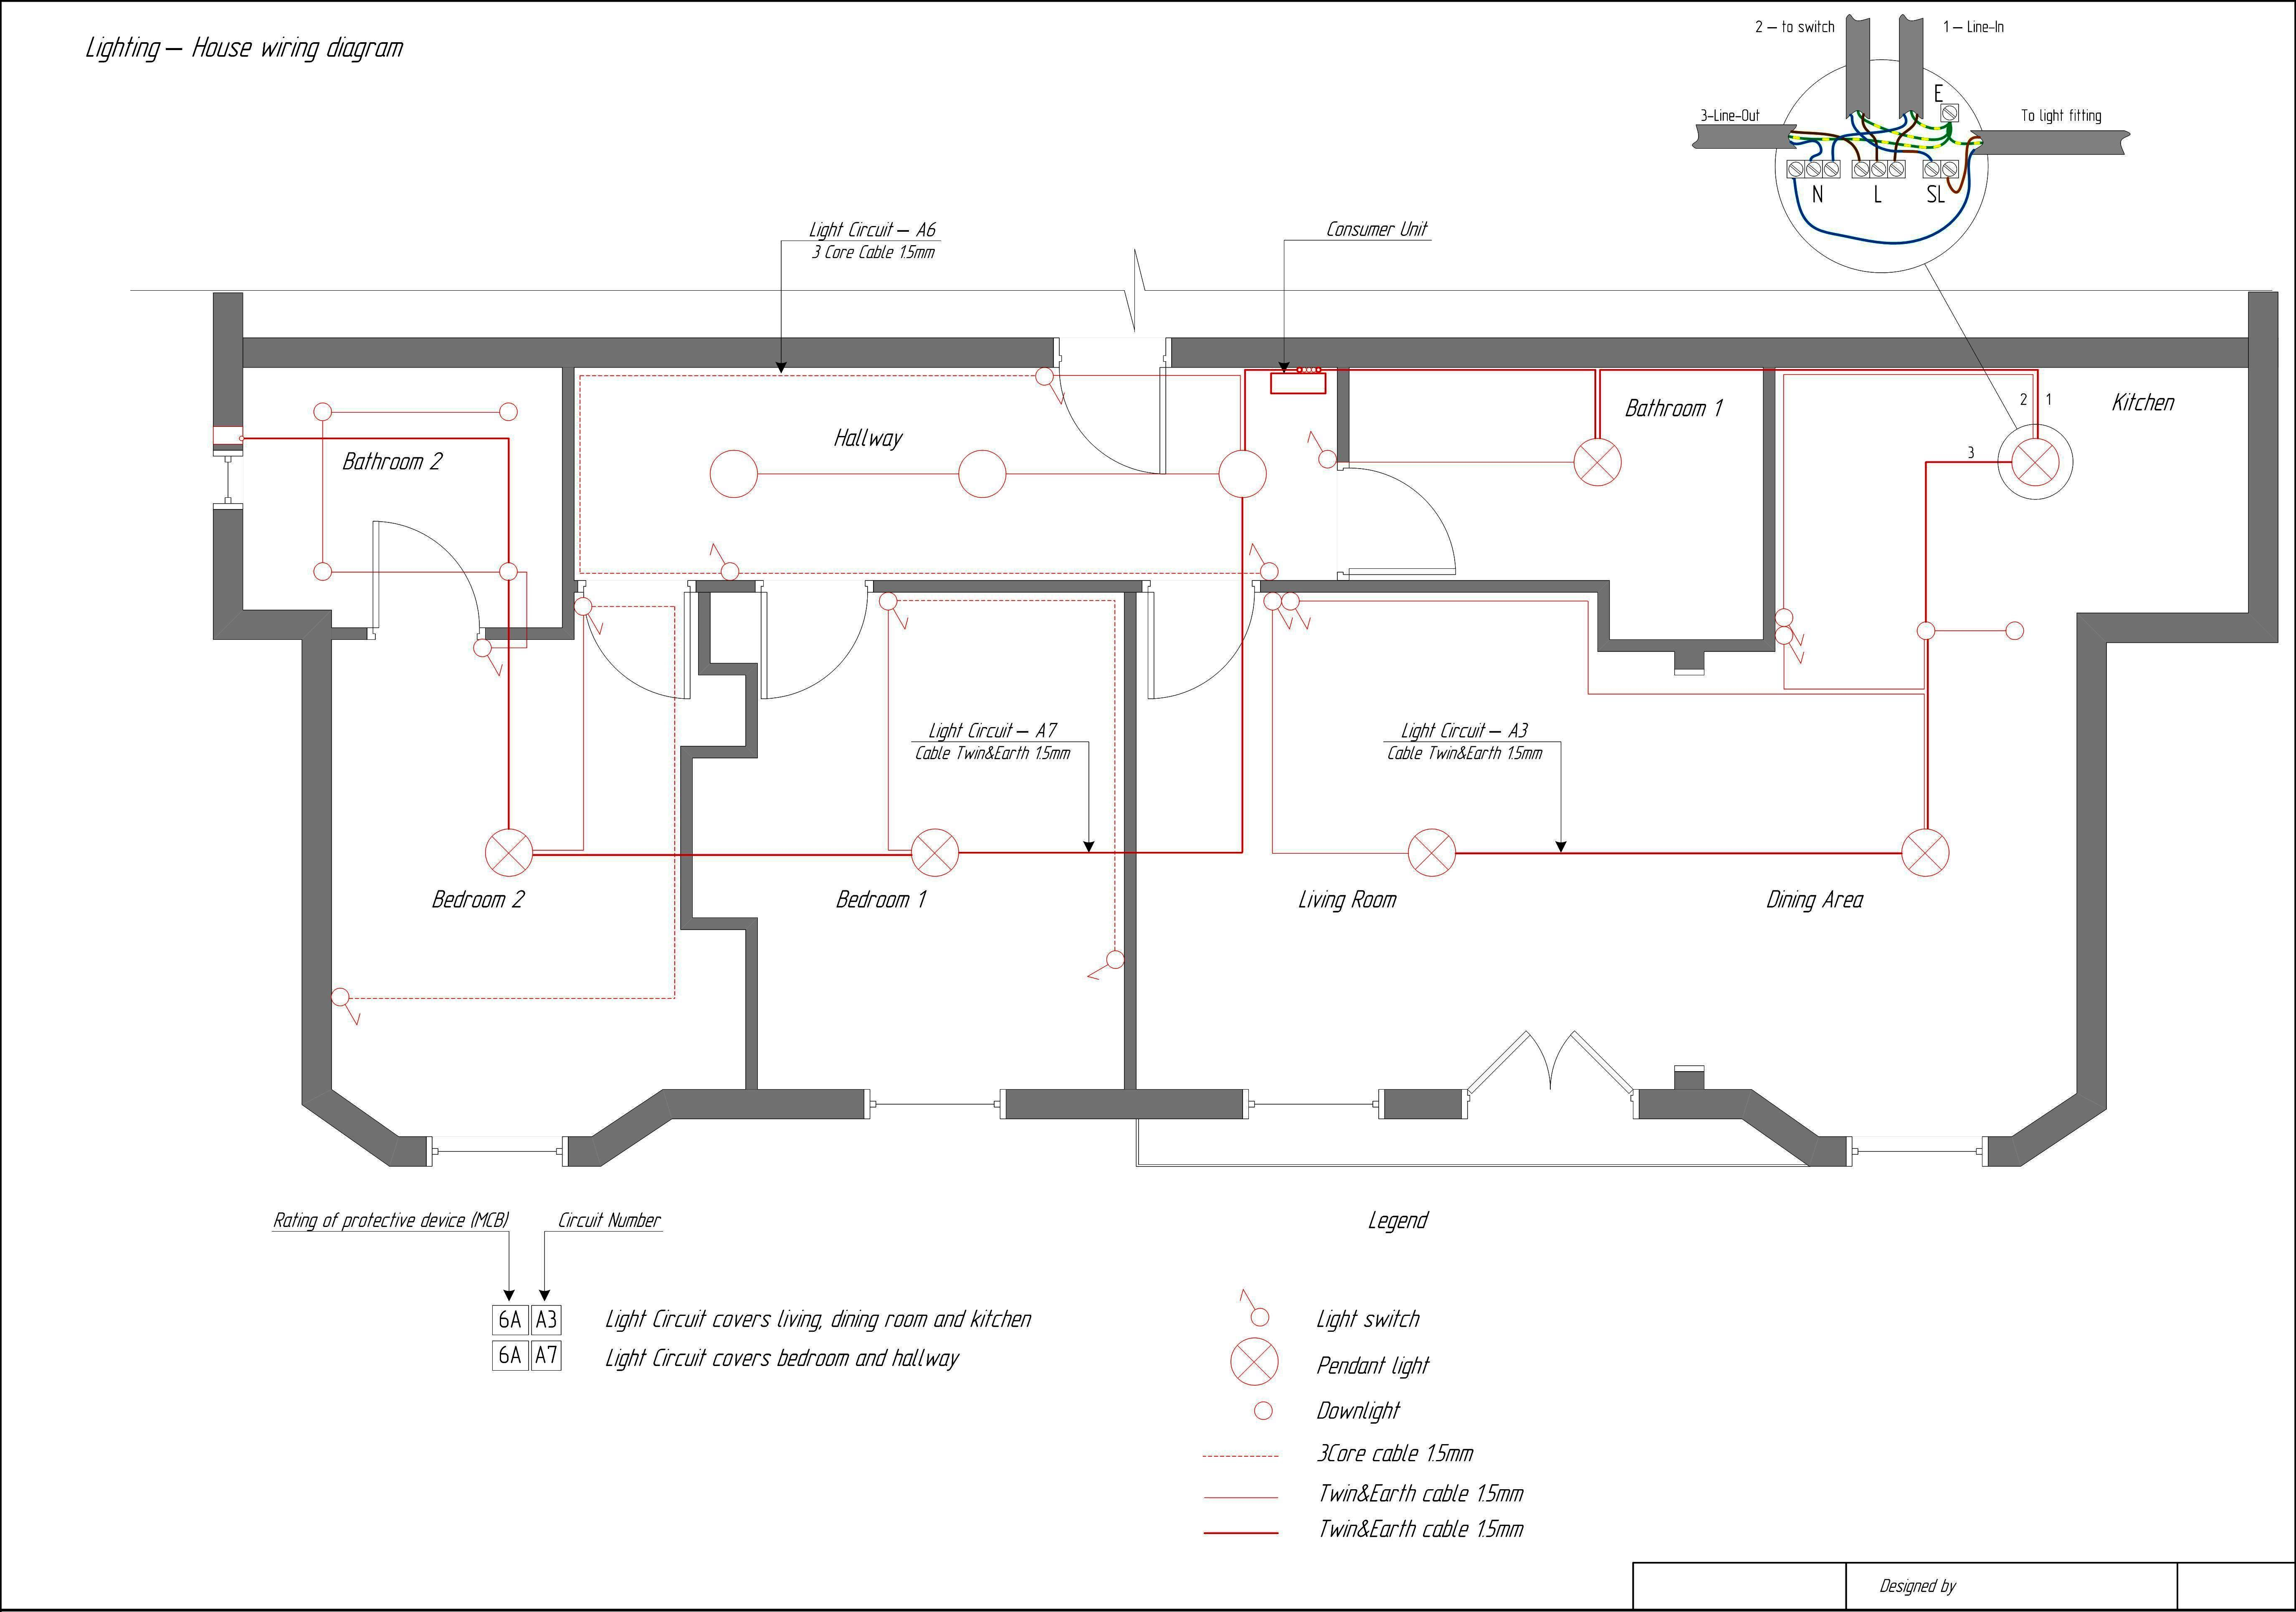 Uk House Electrical Wiring Diagrams | Wiring Diagram - House Electrical Wiring Diagram